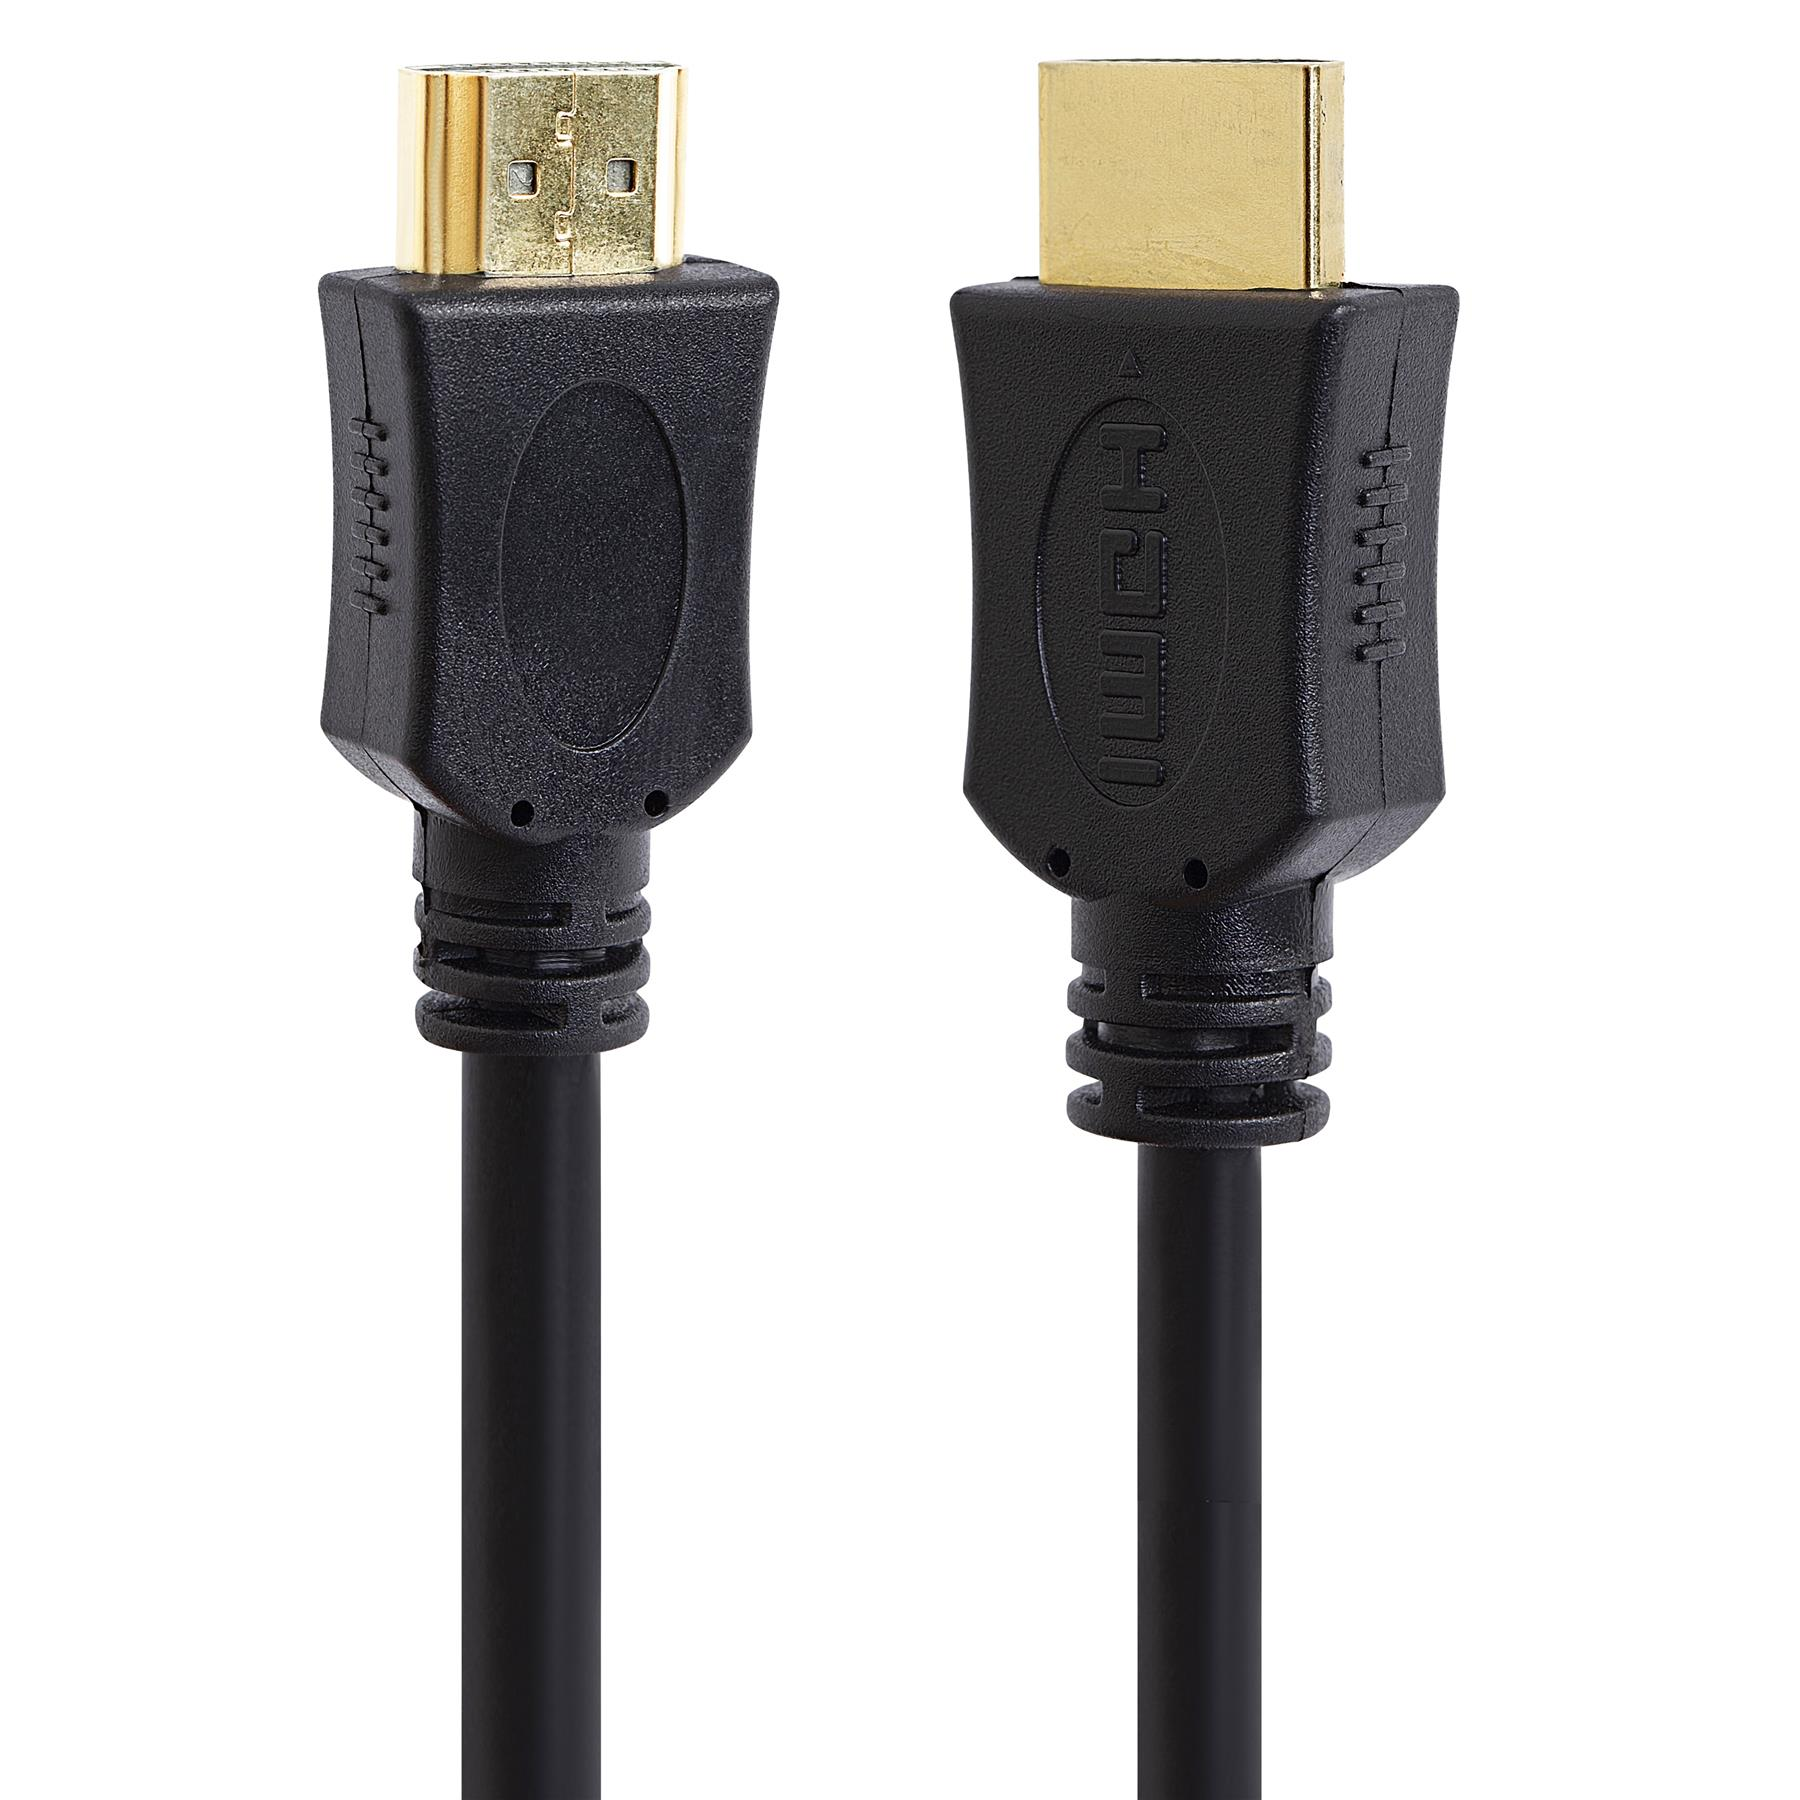 Premium-HDMI-Cable-High-Speed-3D-4K-HD-TV-Monitor-Lead-0-5m-1m-2m-3m-5m miniatura 4